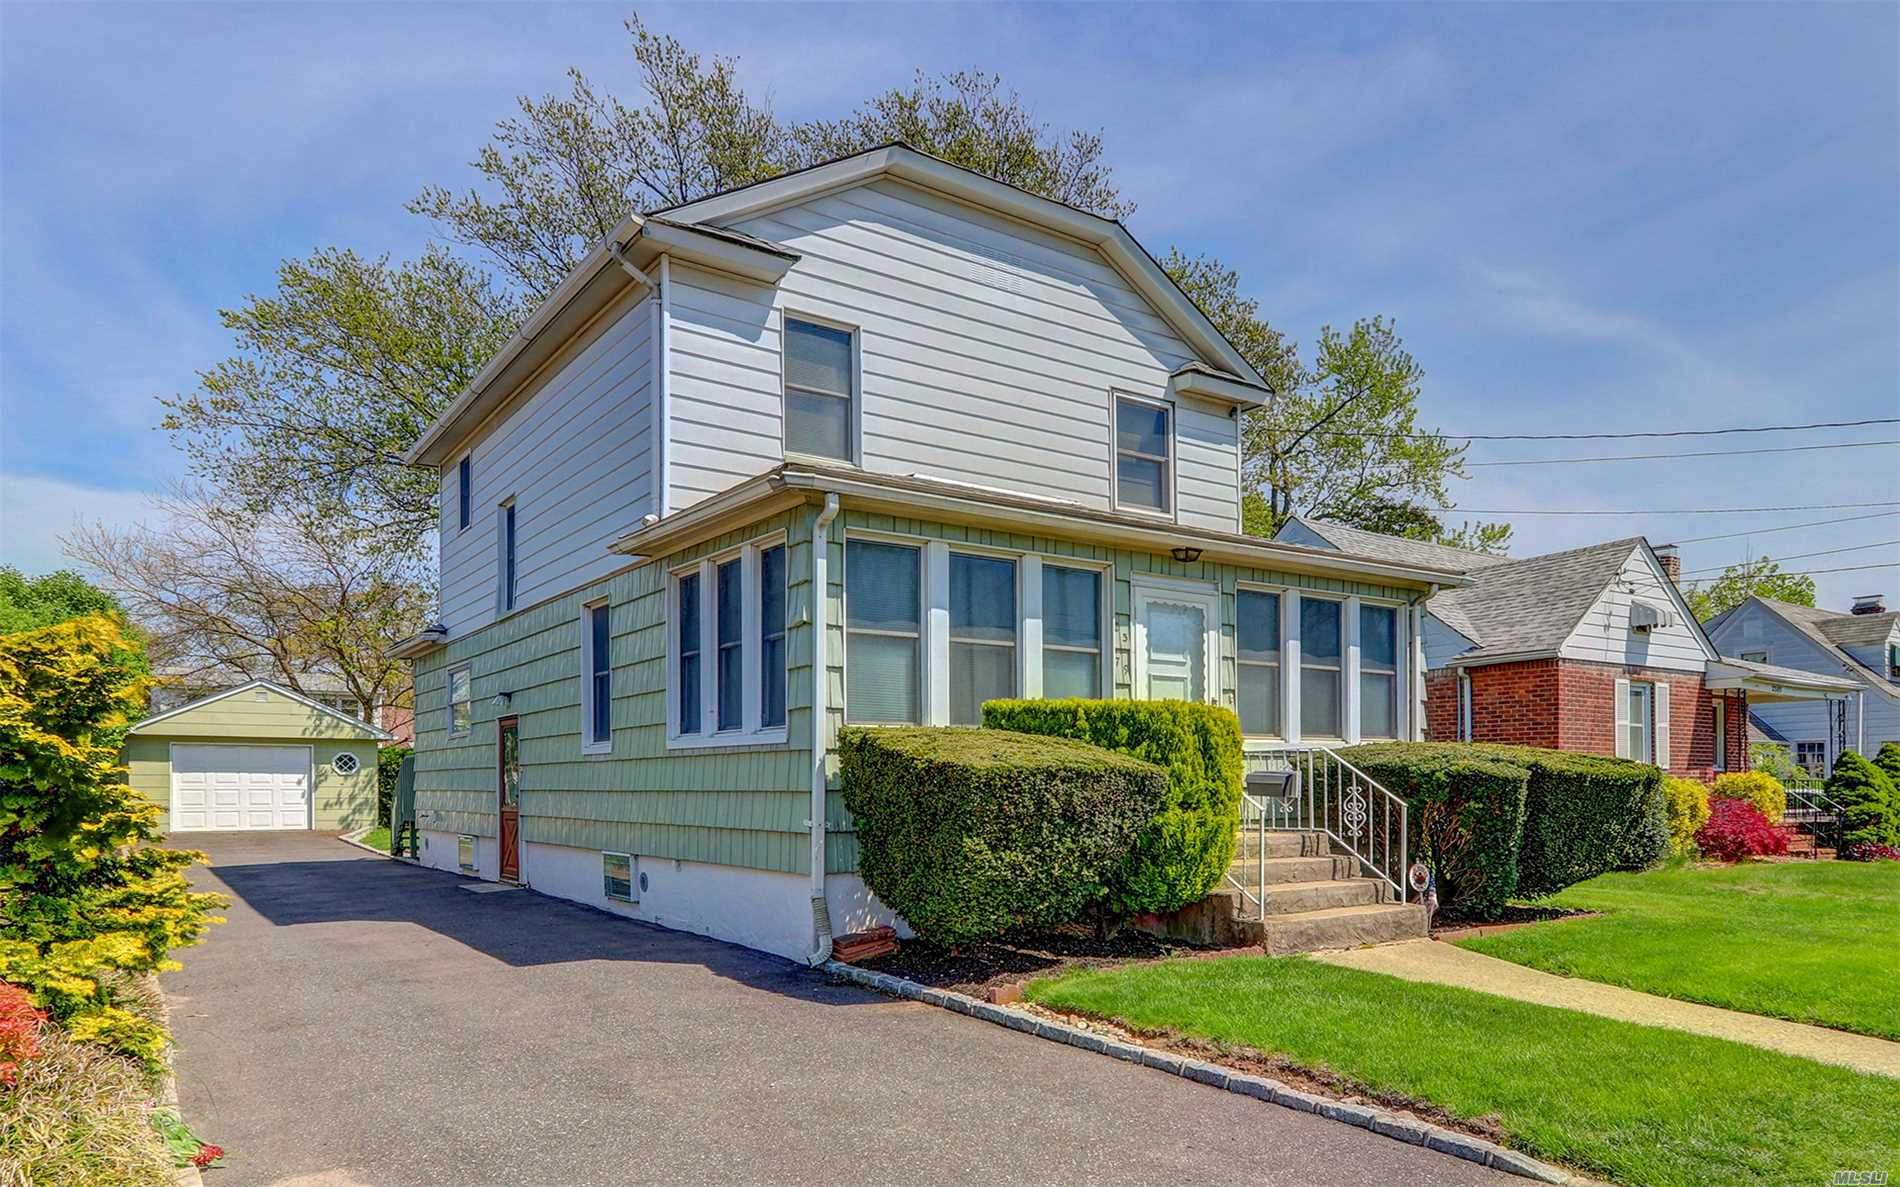 Well Maintained 3 Bedroom, 2 Bath, With Formal Dining Room, Living Room, Eik, Enclosed Front Porch/Office, Back Deck With Motorized Awing, Detached Garage, Full Unfinished Basement.